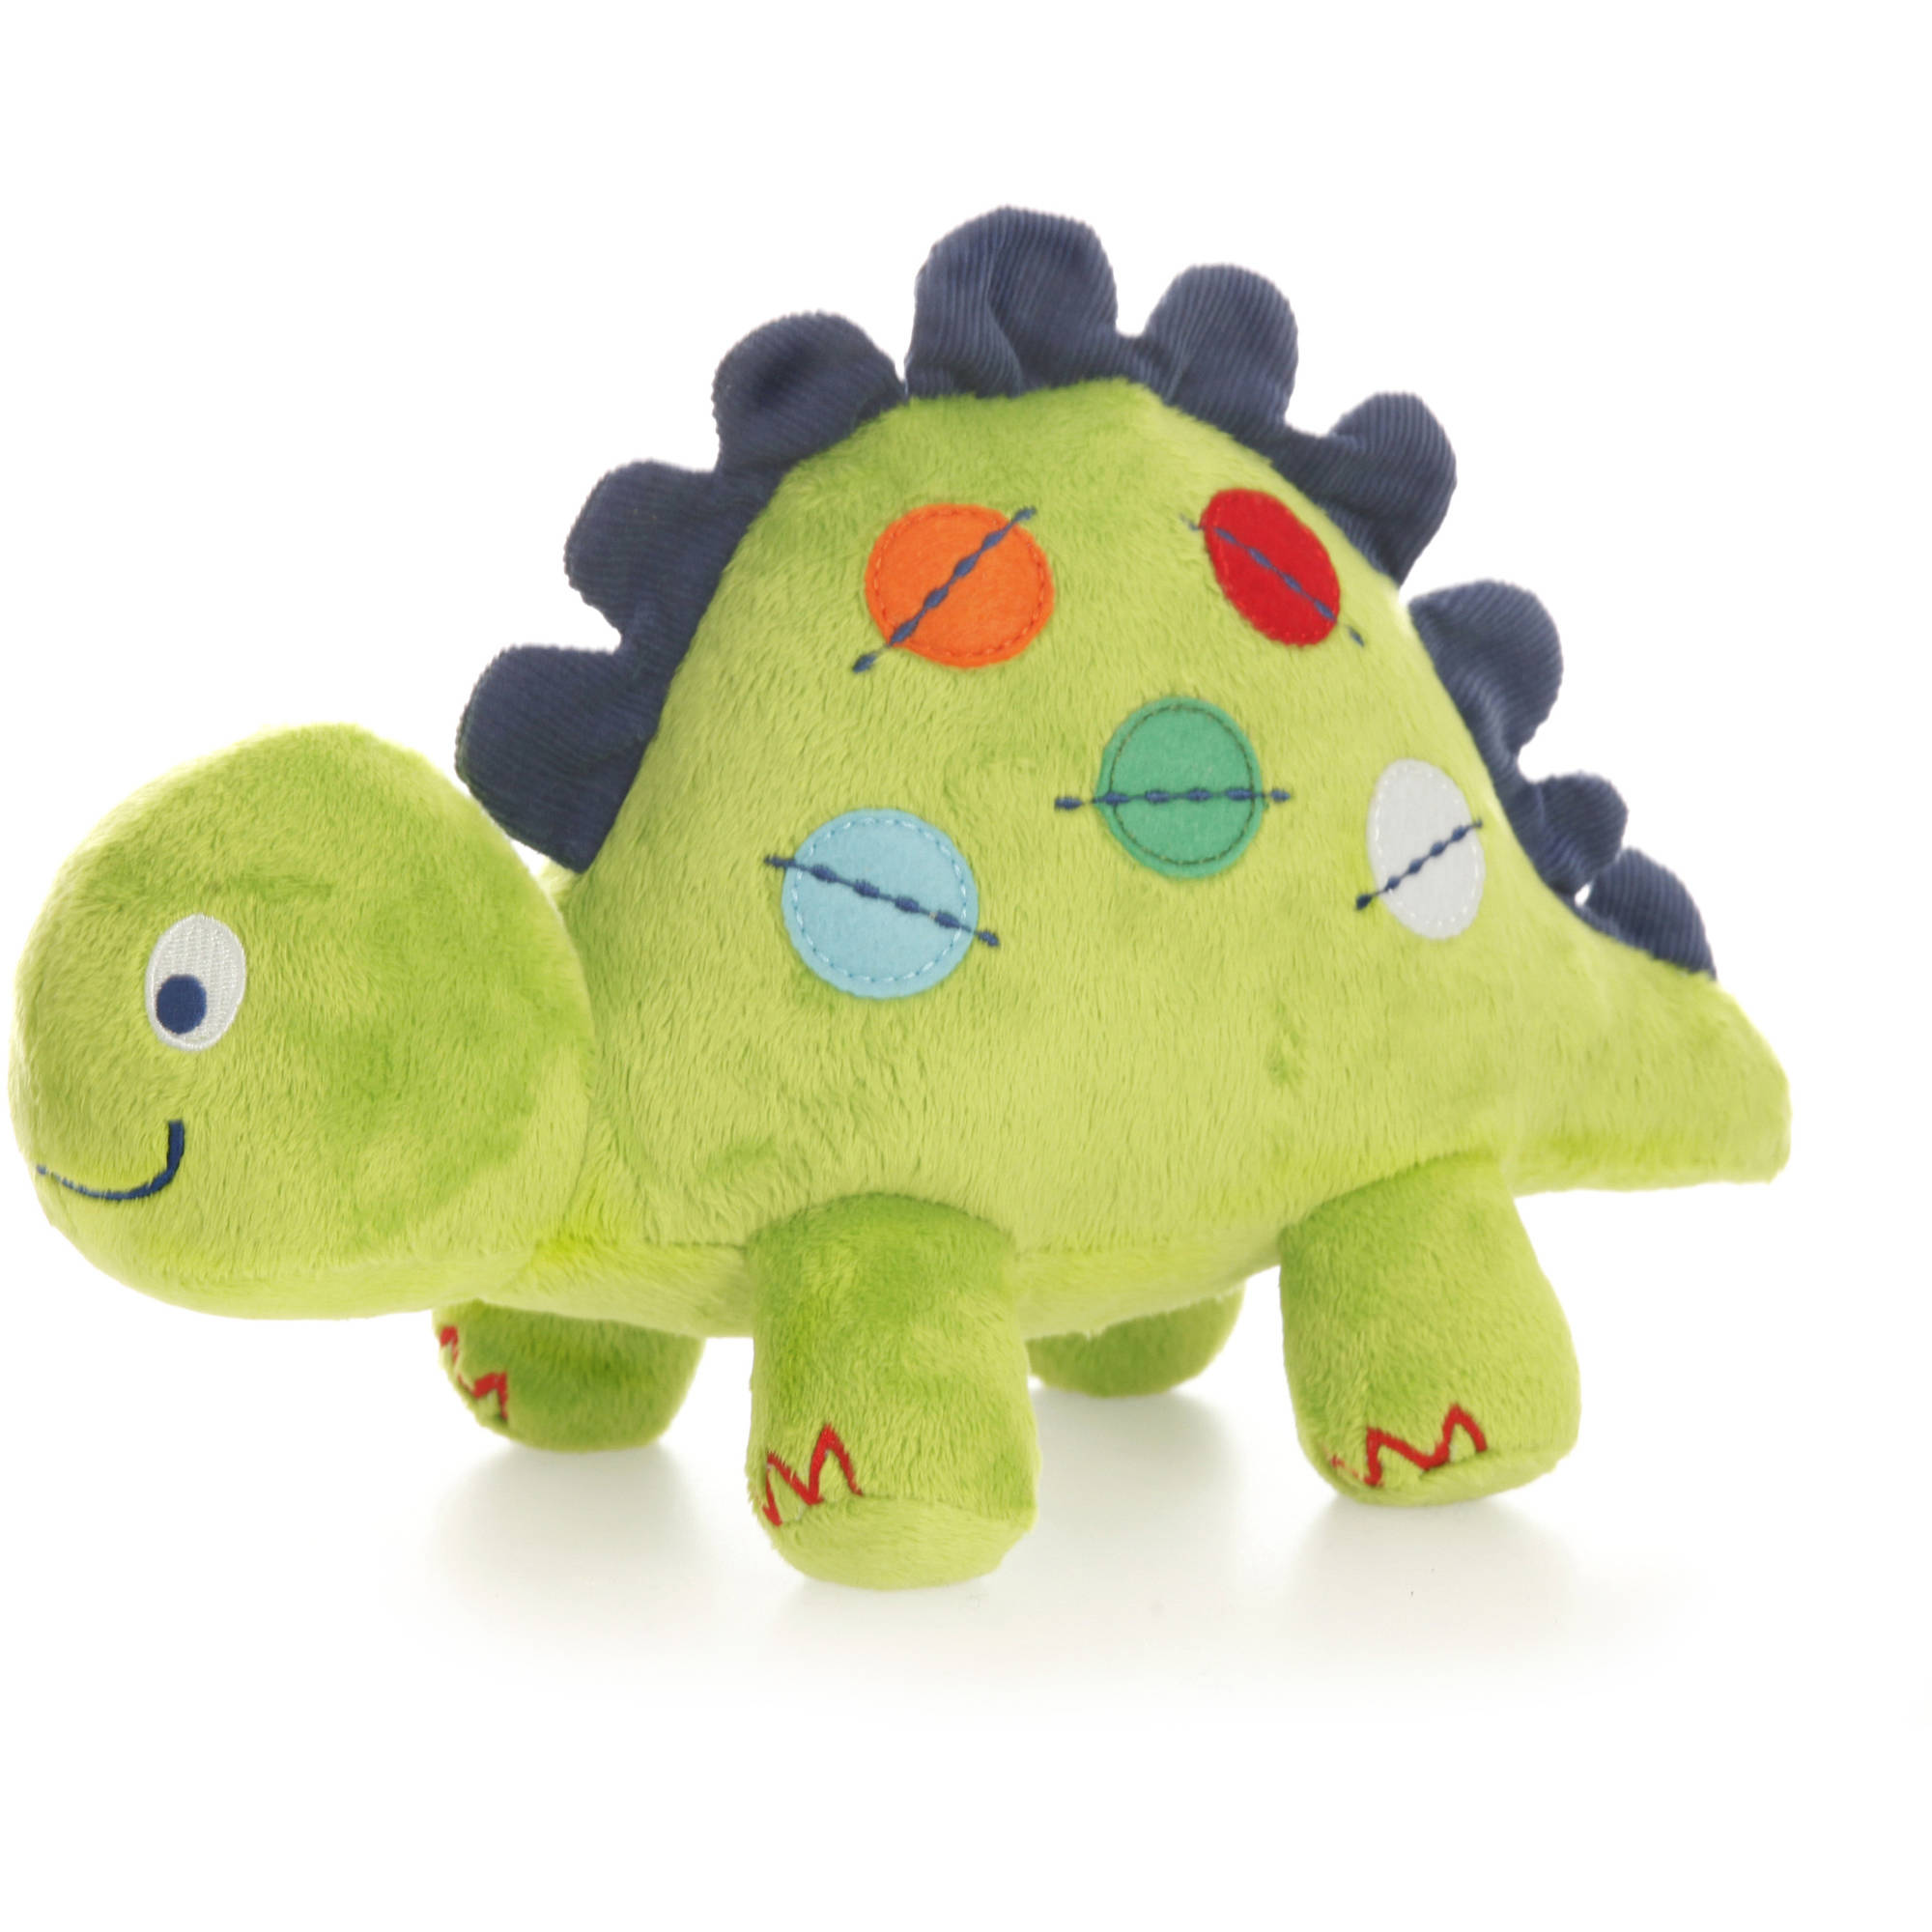 Bananafish Little Dino Plush